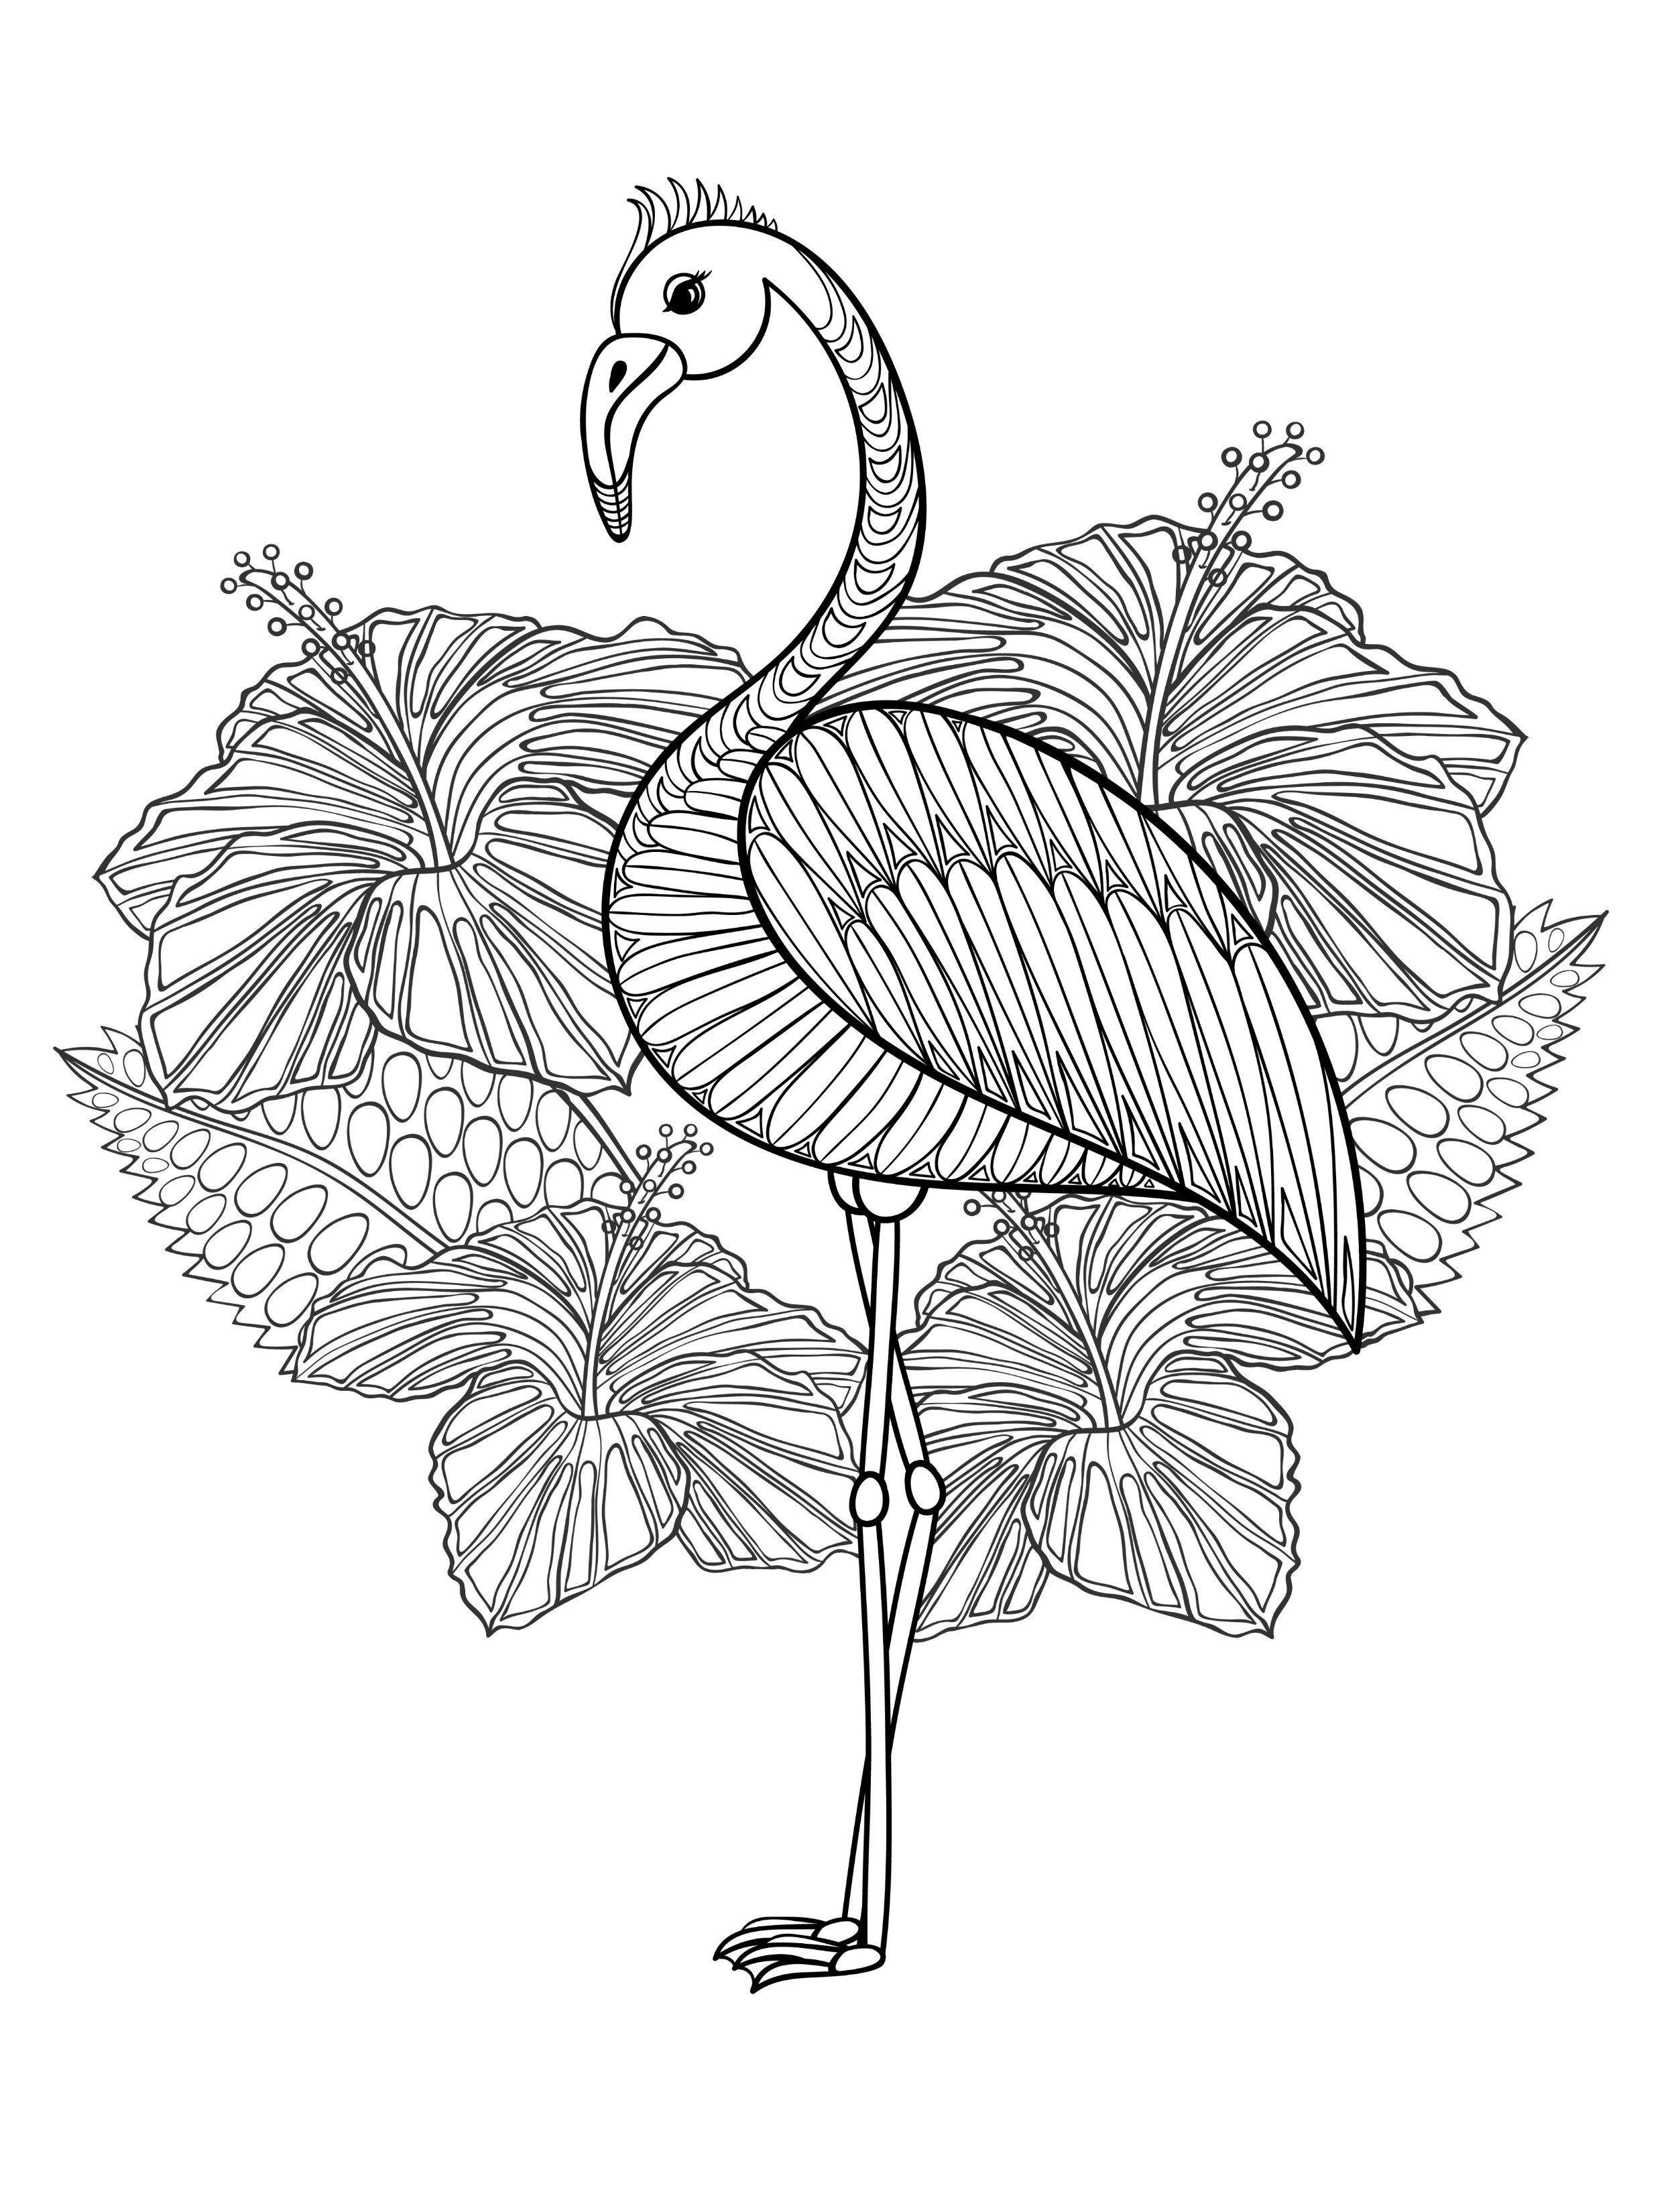 cute flamingo coloring page for adults to print at home - Flamingo Coloring Page